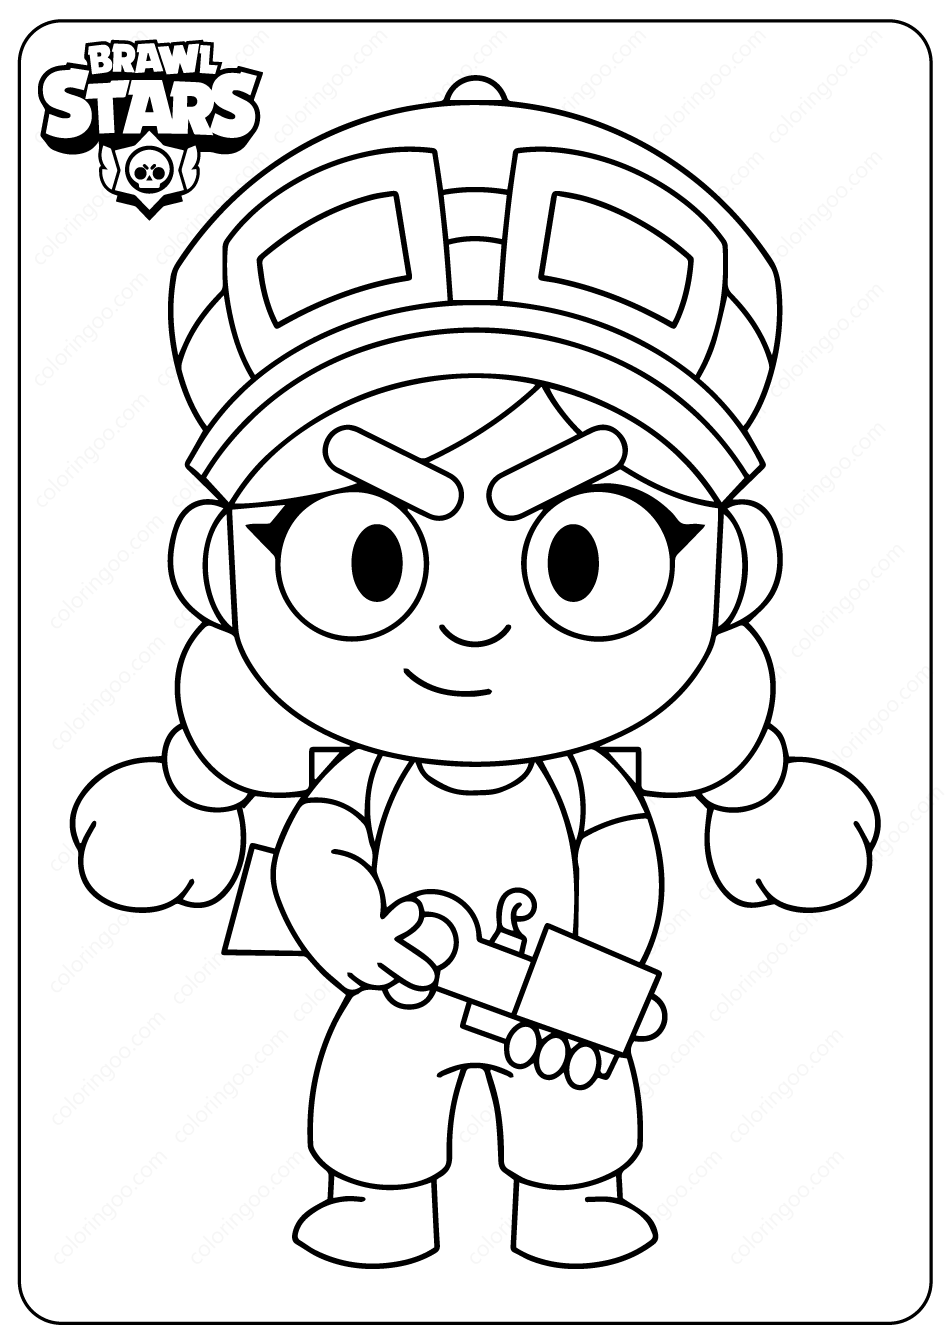 Printable Brawl Stars Jessie Coloring Pages In 2020 Star Coloring Pages Coloring Pages Star Wallpaper